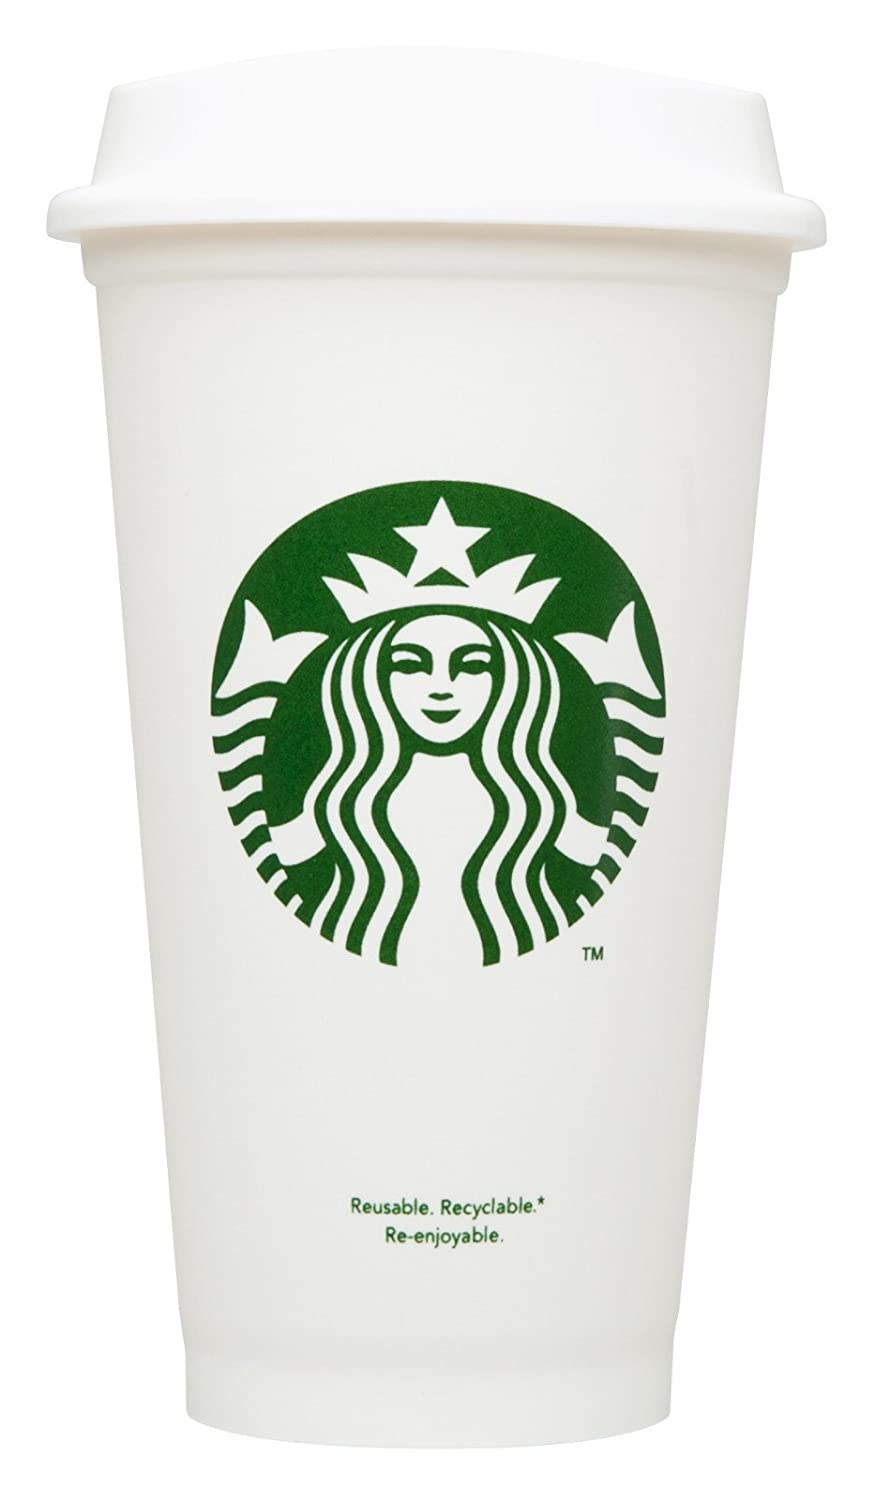 Starbucks Reusable Travel Cup To Go Coffee Cup (Grande 16 Oz) by Starbucks